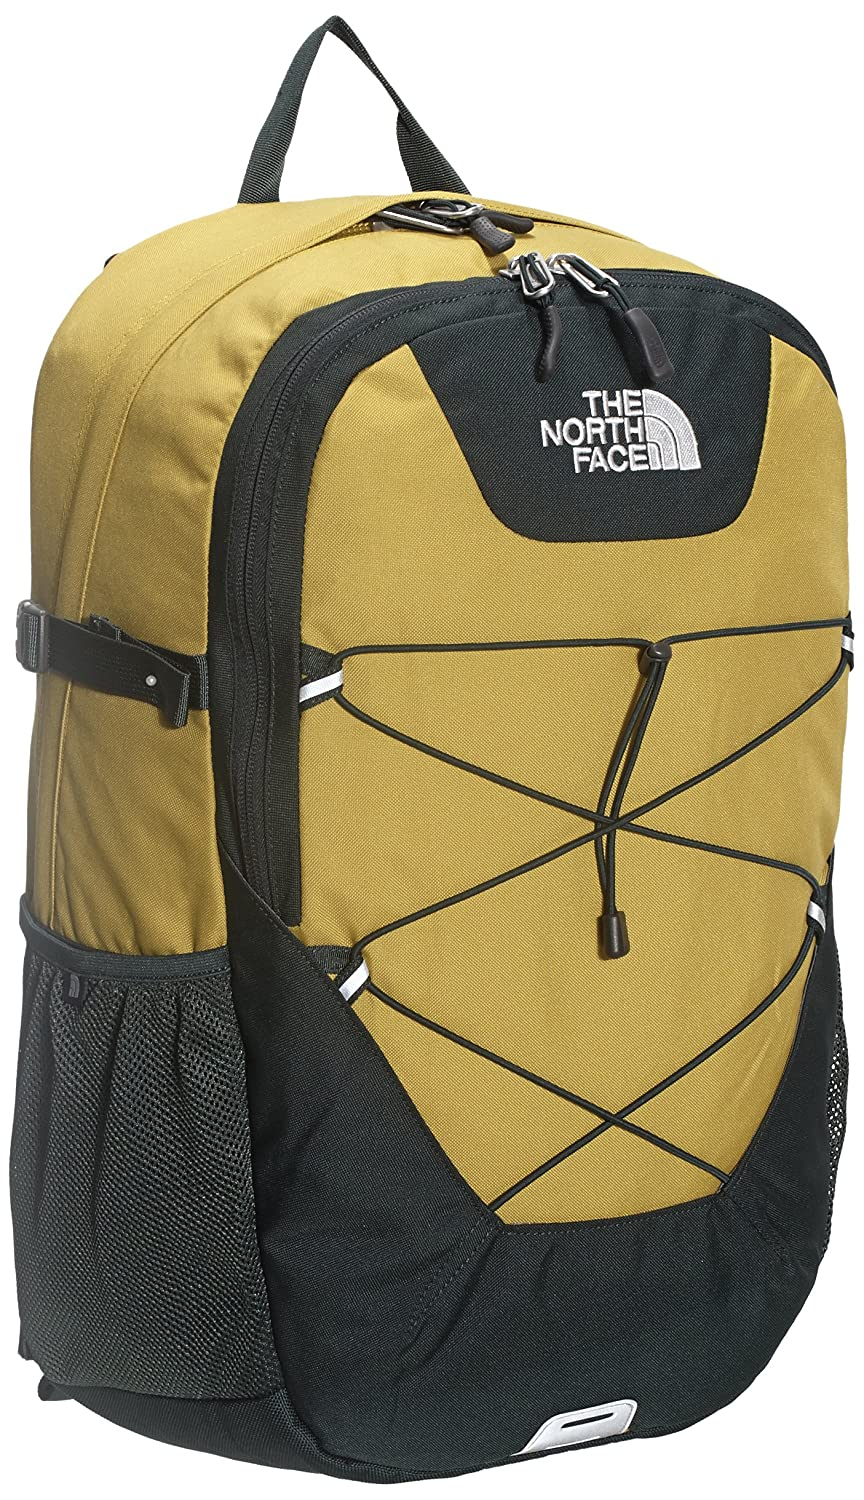 8c9fd896e Amazon.com: North Face Slingshot Backpack - Antique Moss/Sage Green ...